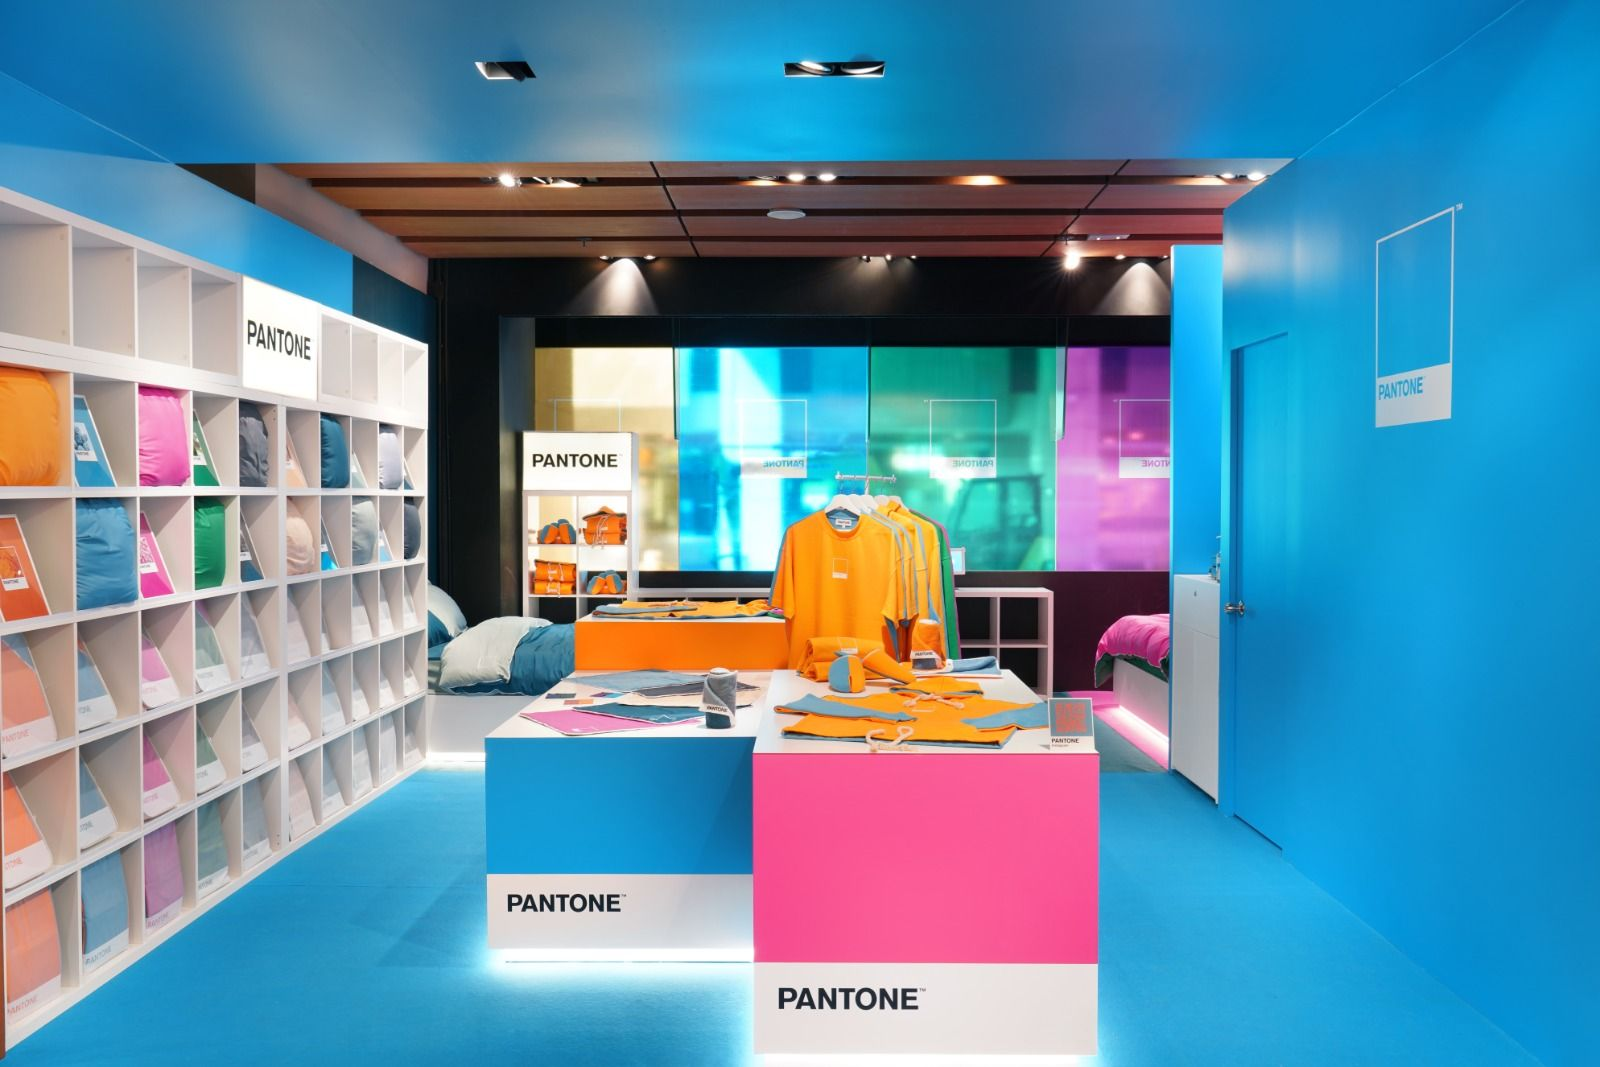 Pantone Opens Its First Lifestyle Store in Hong Kong